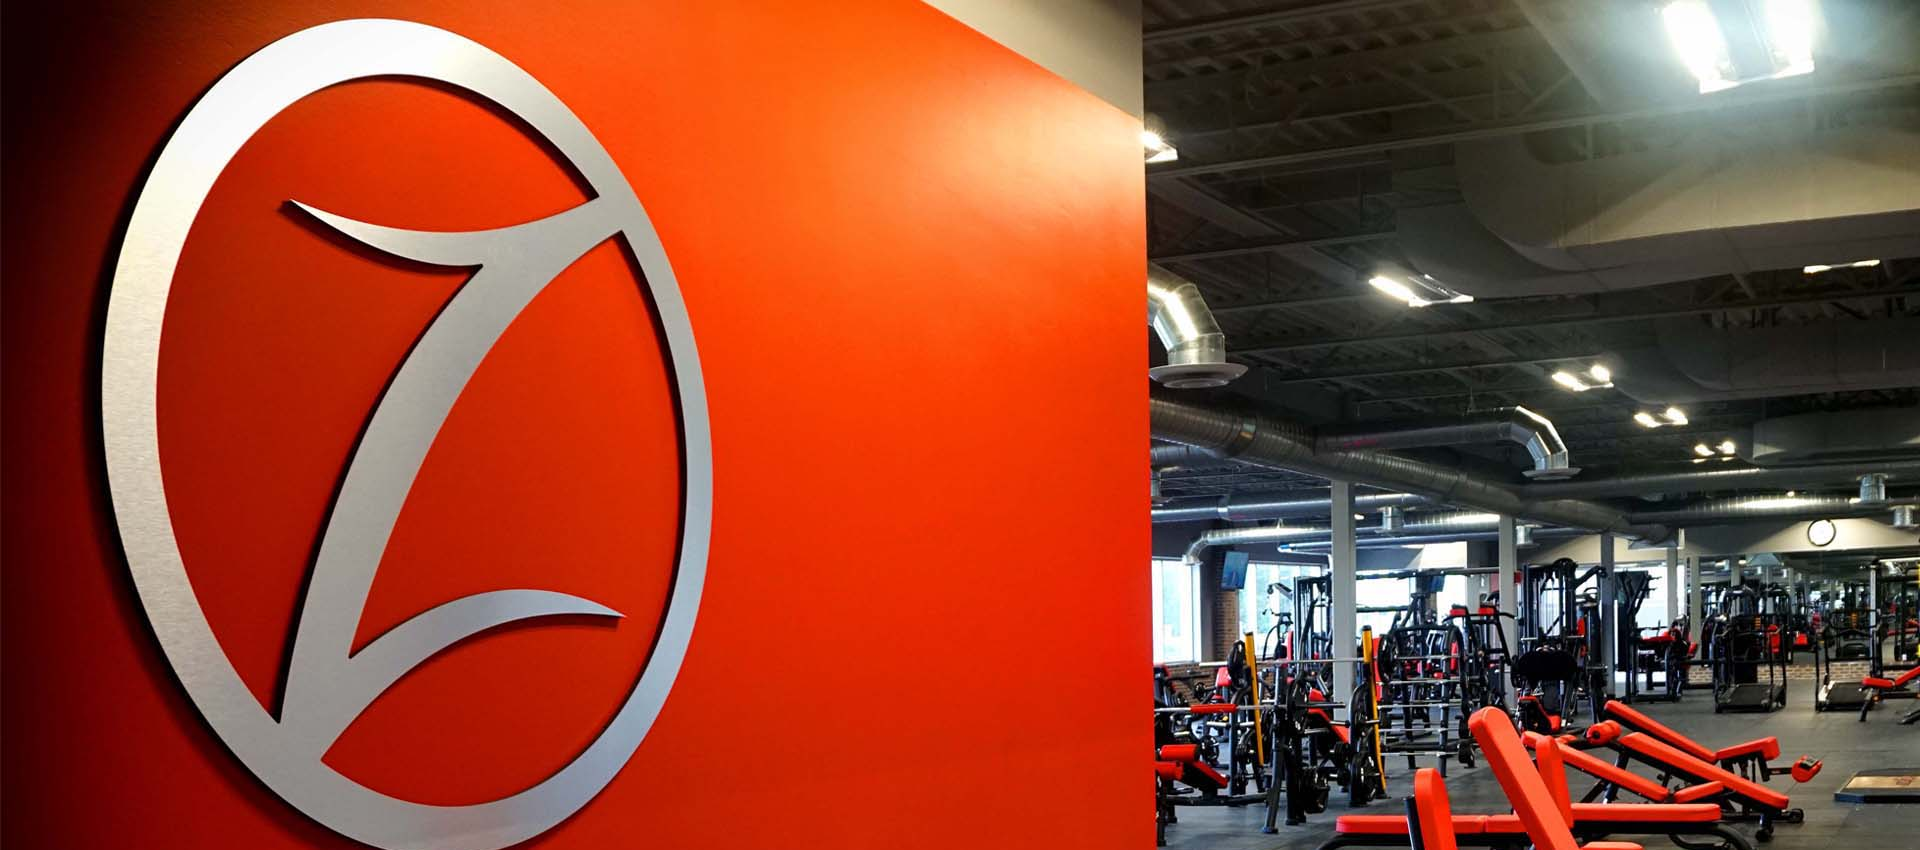 fuzion fitness logo and gym floor area